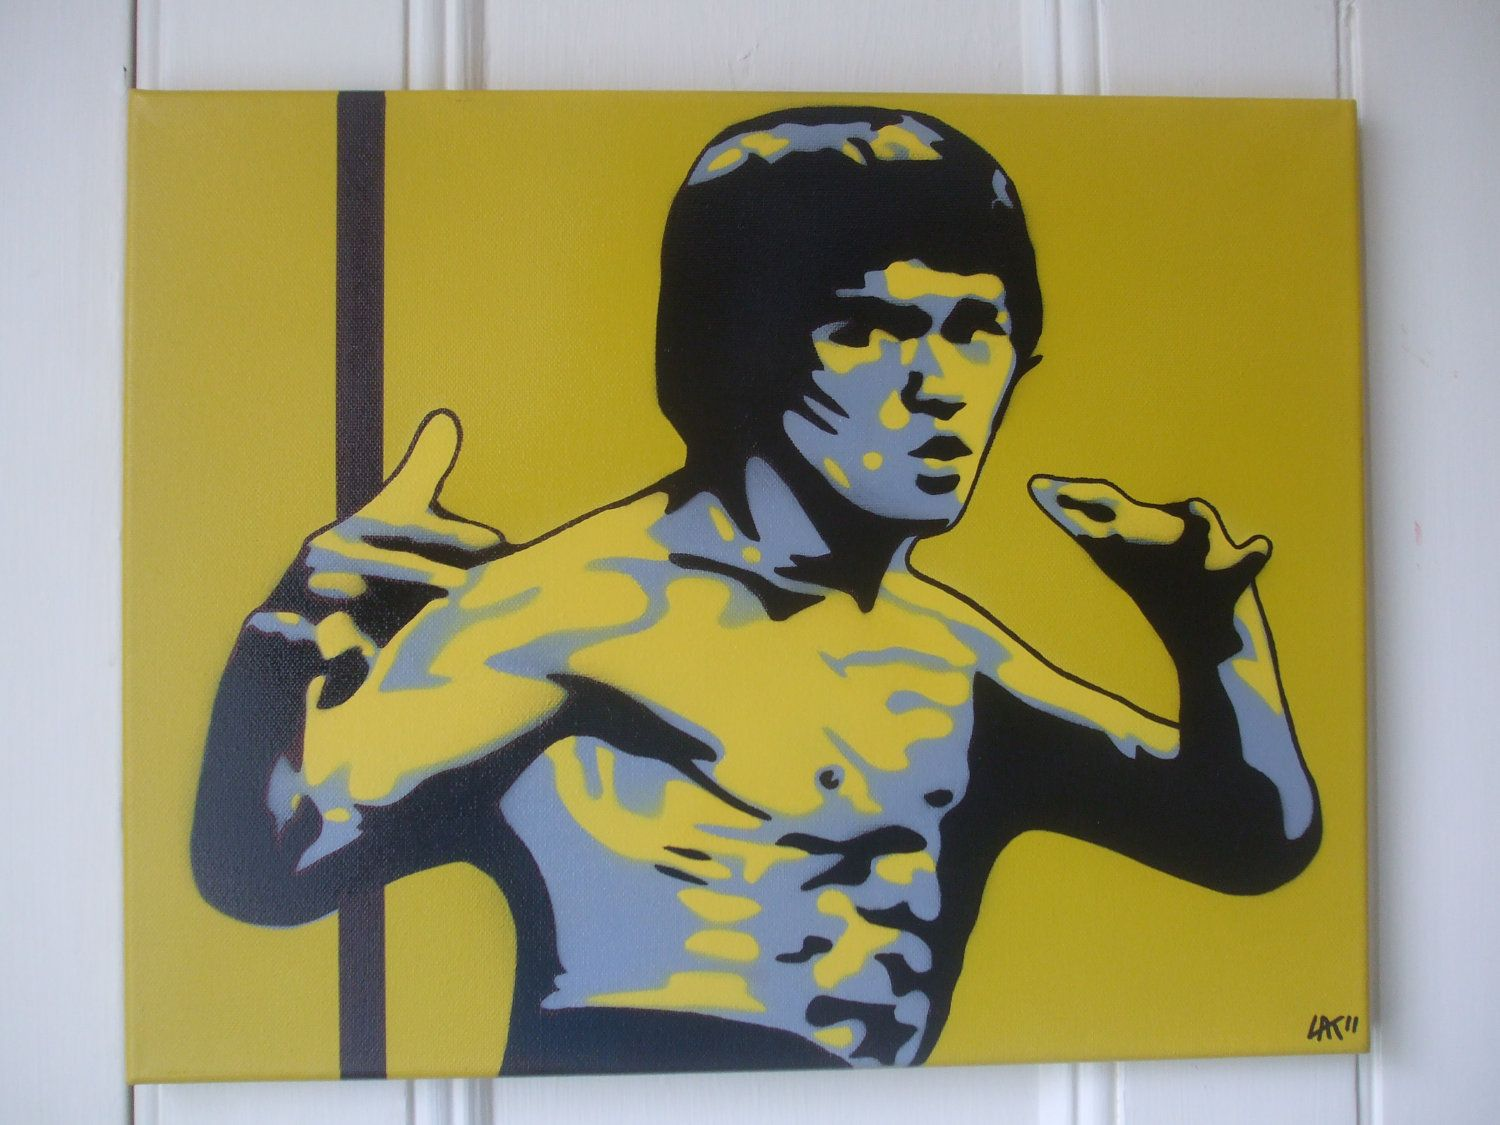 Bruce Lee kill bill,painting on canvas,stencils,spray paints,yellow ...